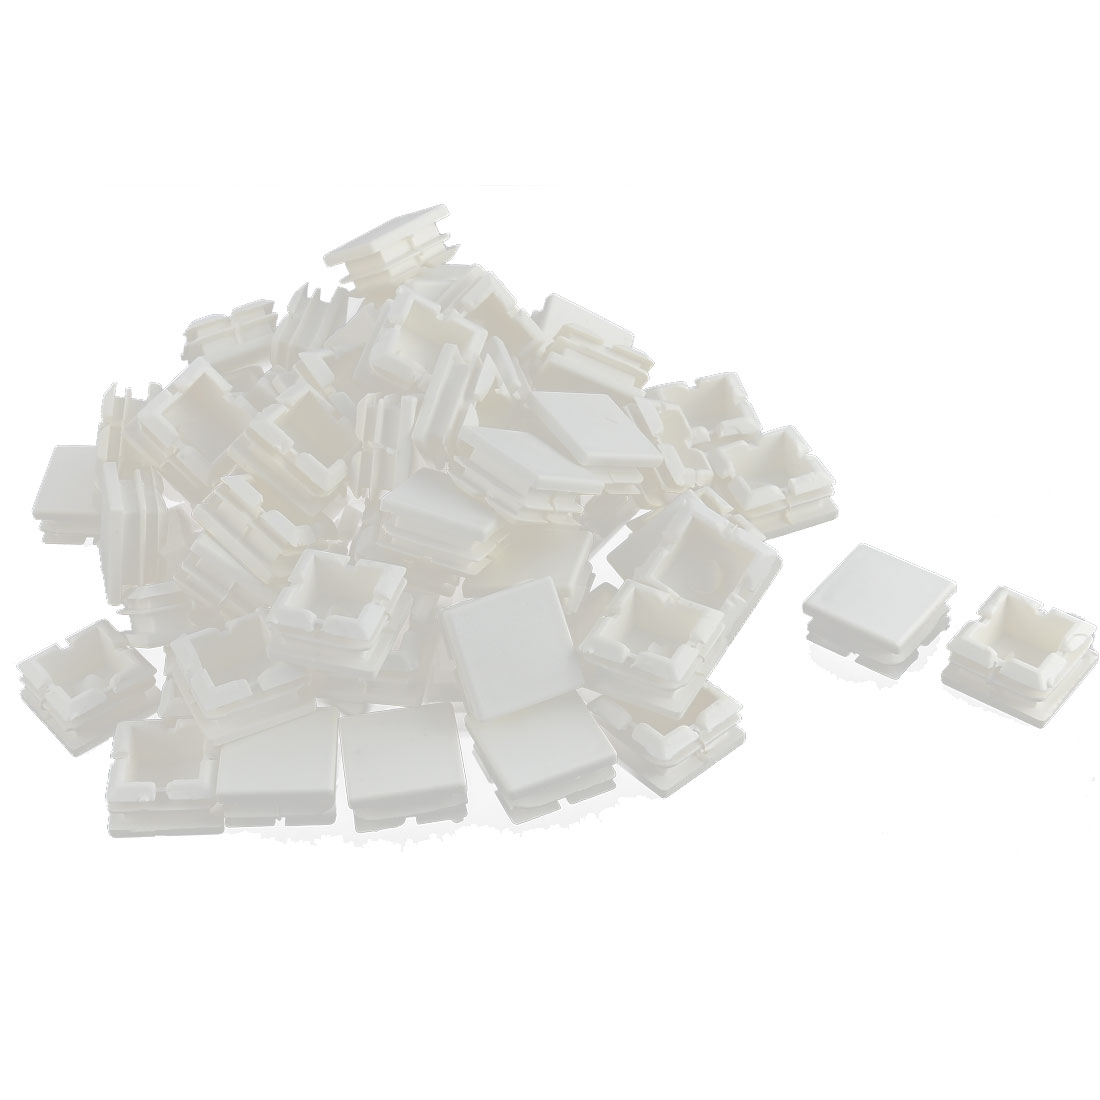 Furniture Table Chair Legs Plastic Square Tube Insert Cap Cover Protector White 25 x 25mm 70pcs